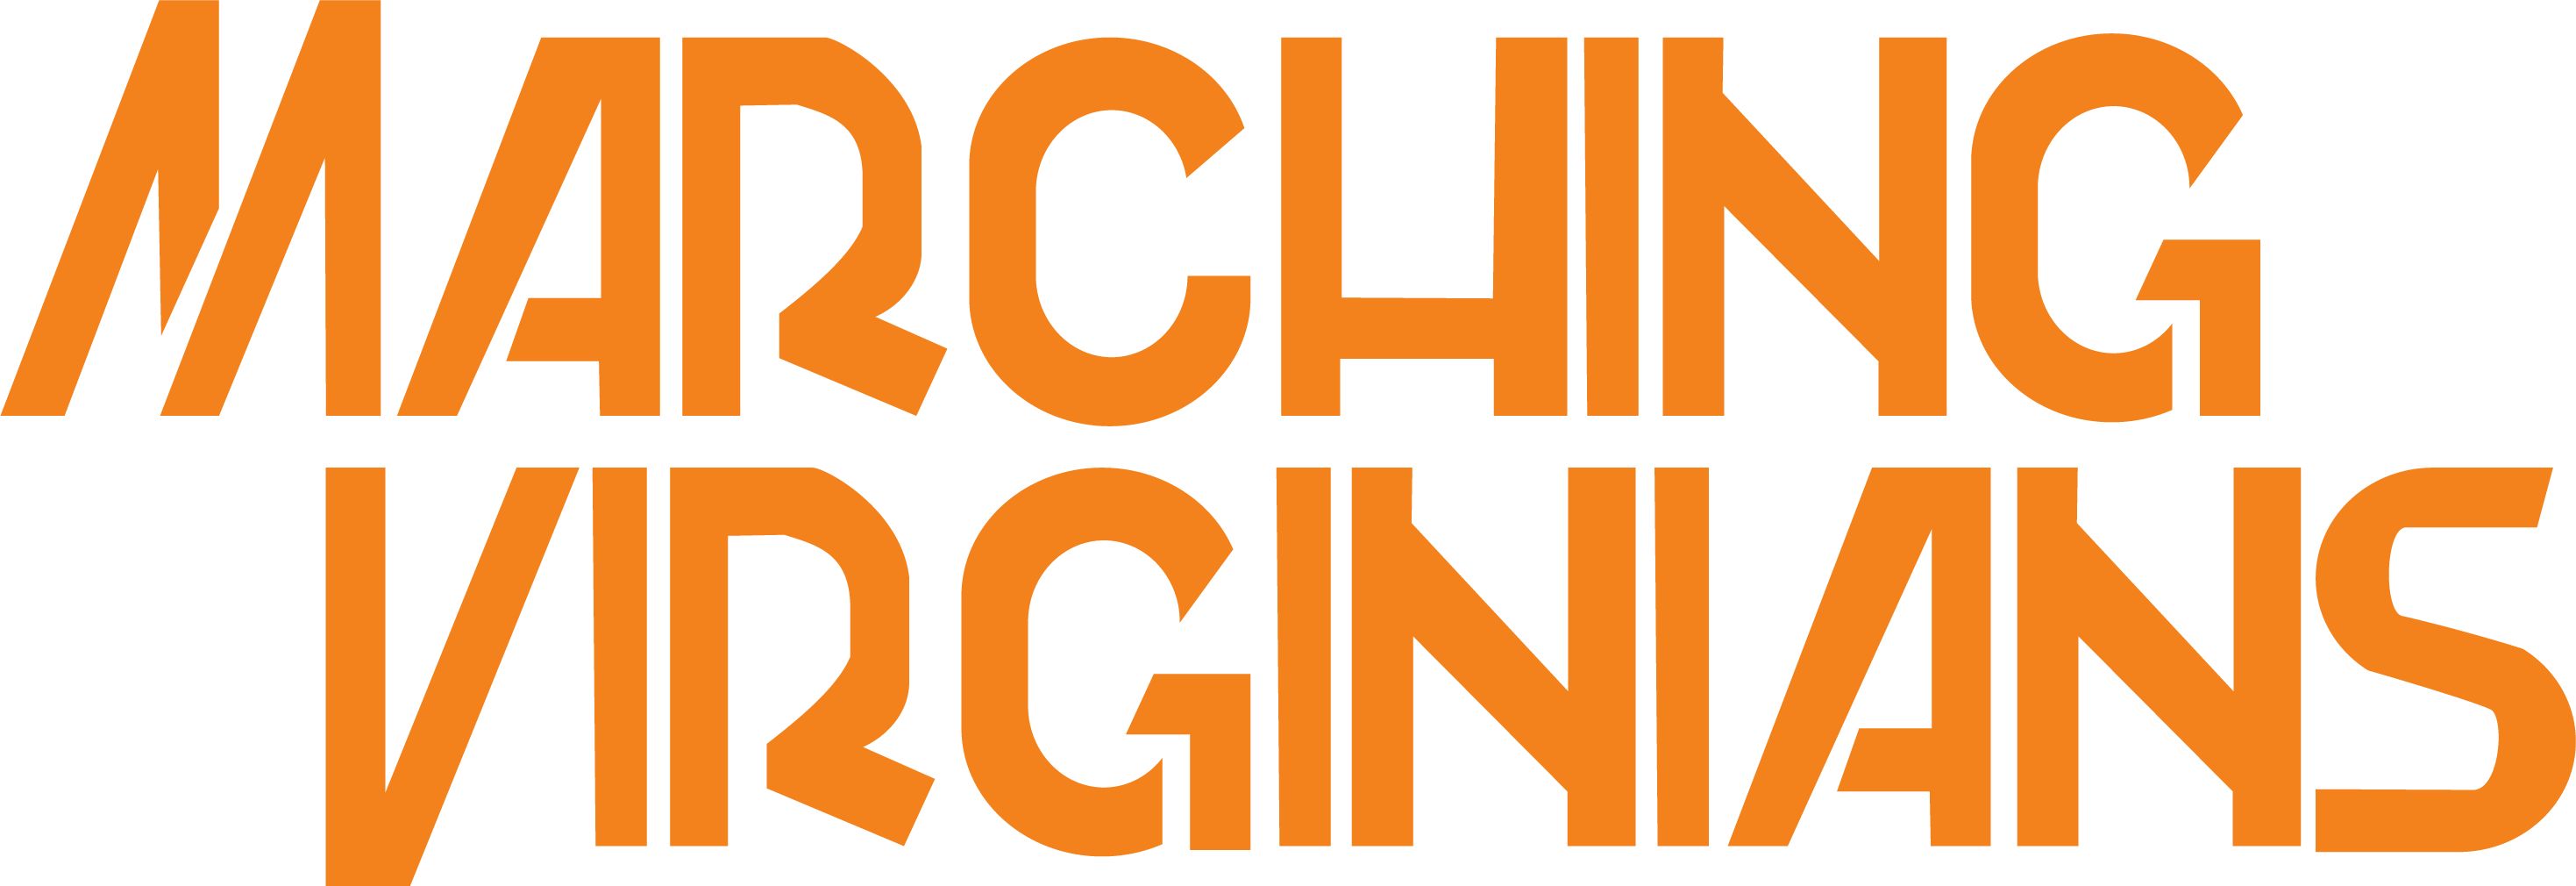 Marching Virginians Logo